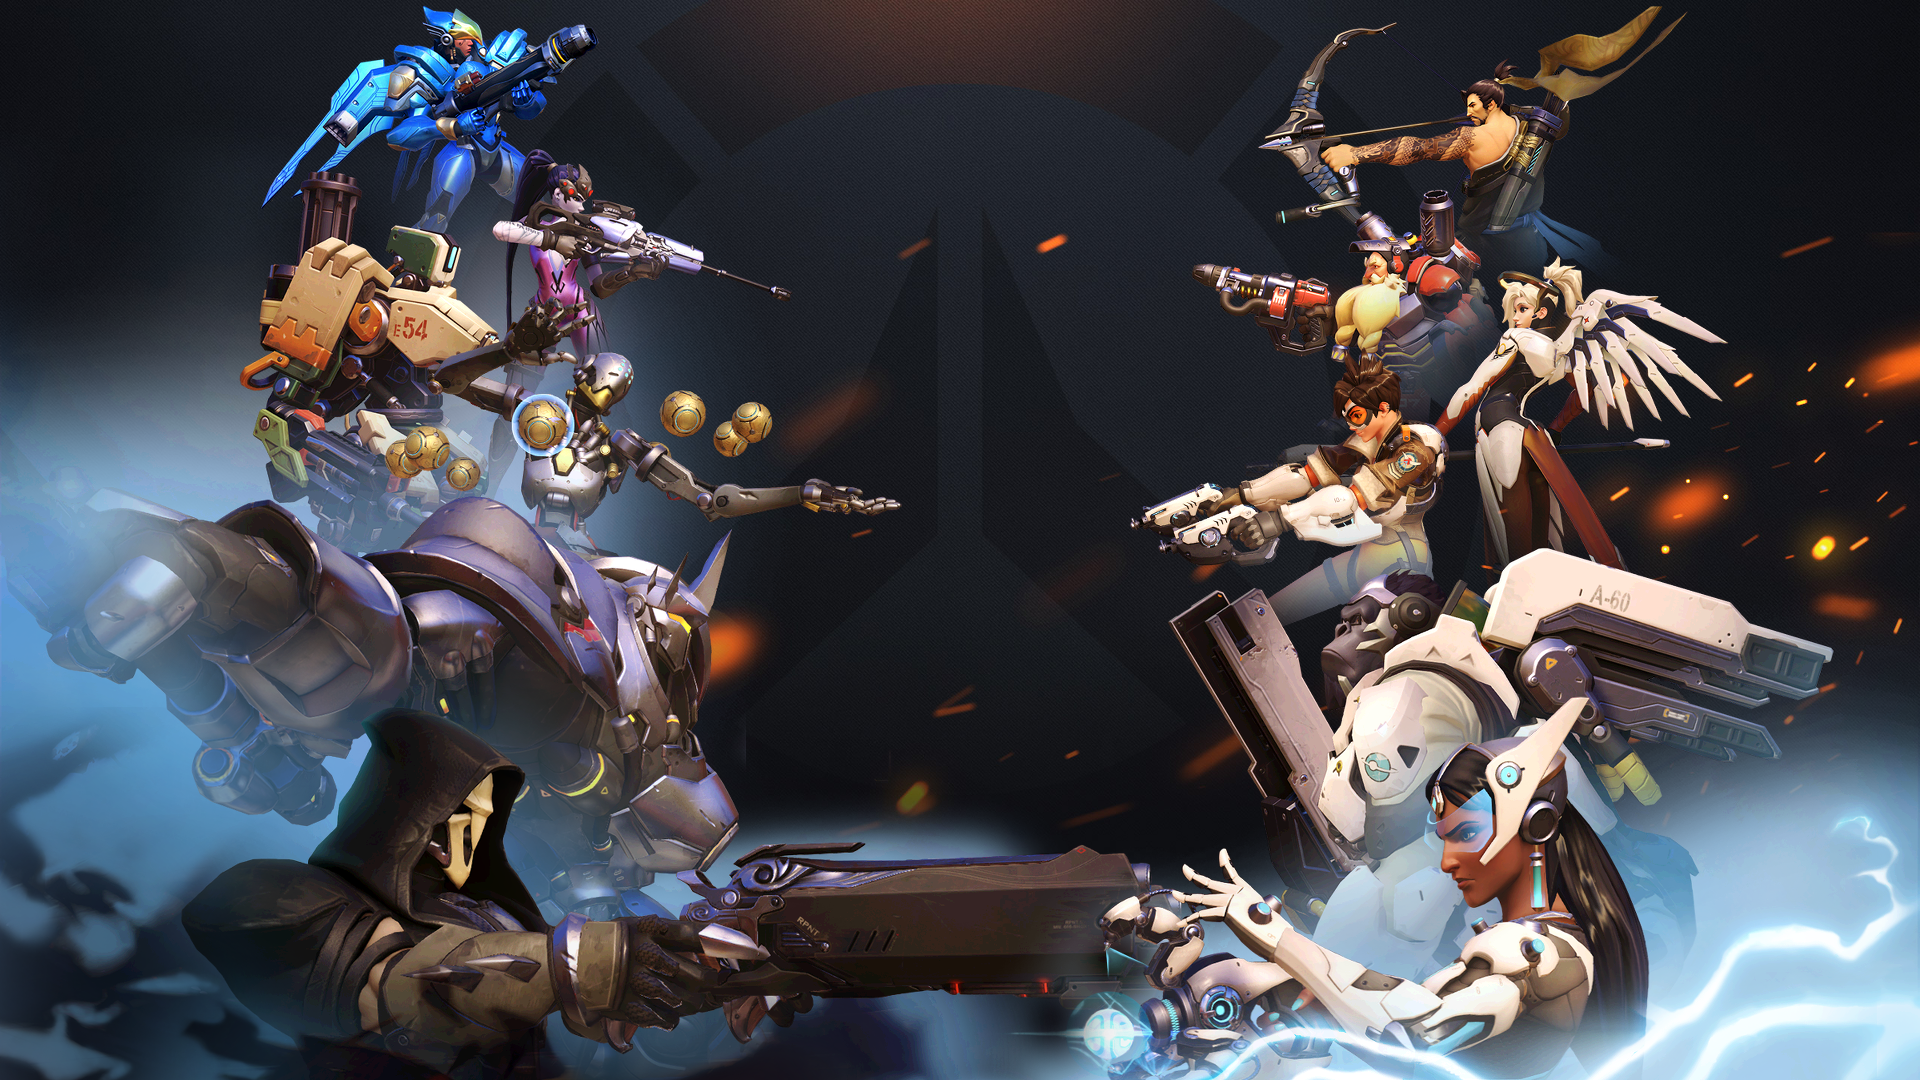 Overwatch Wallpaper Dual Monitor: 207 Widowmaker (Overwatch) HD Wallpapers